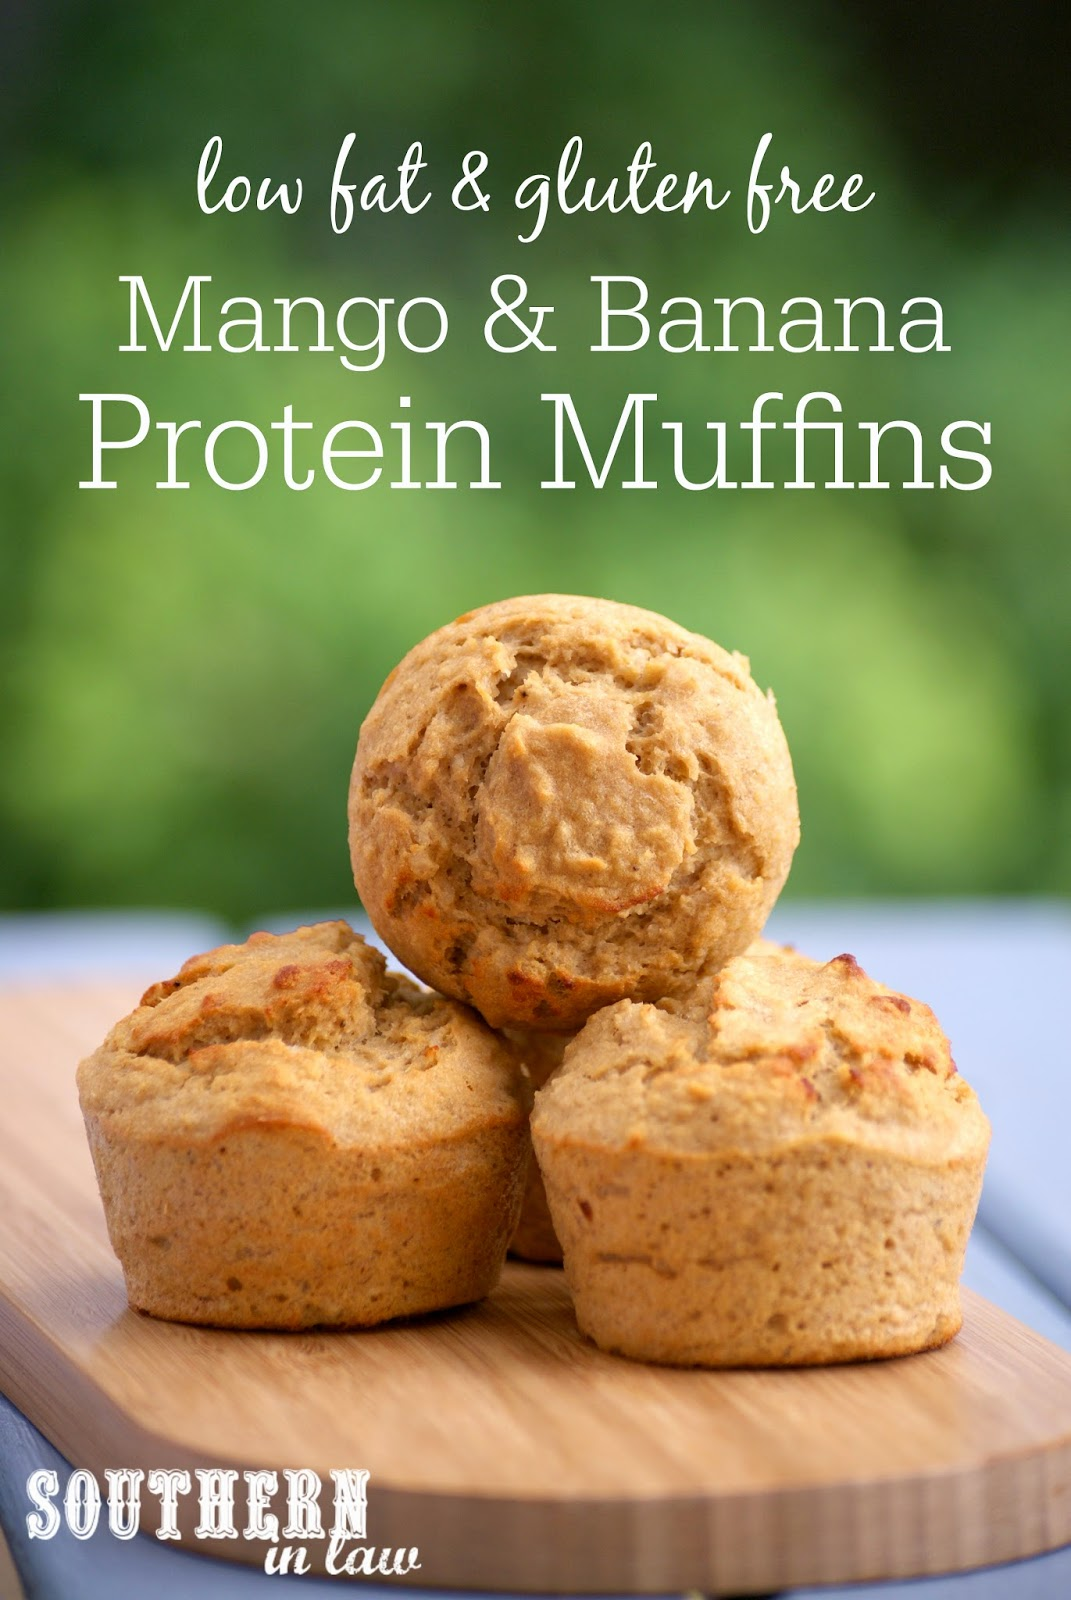 Gluten Free Mango Banana Protein Muffins - low fat, gluten free, high protein, low calorie, sugar free, clean eating recipes